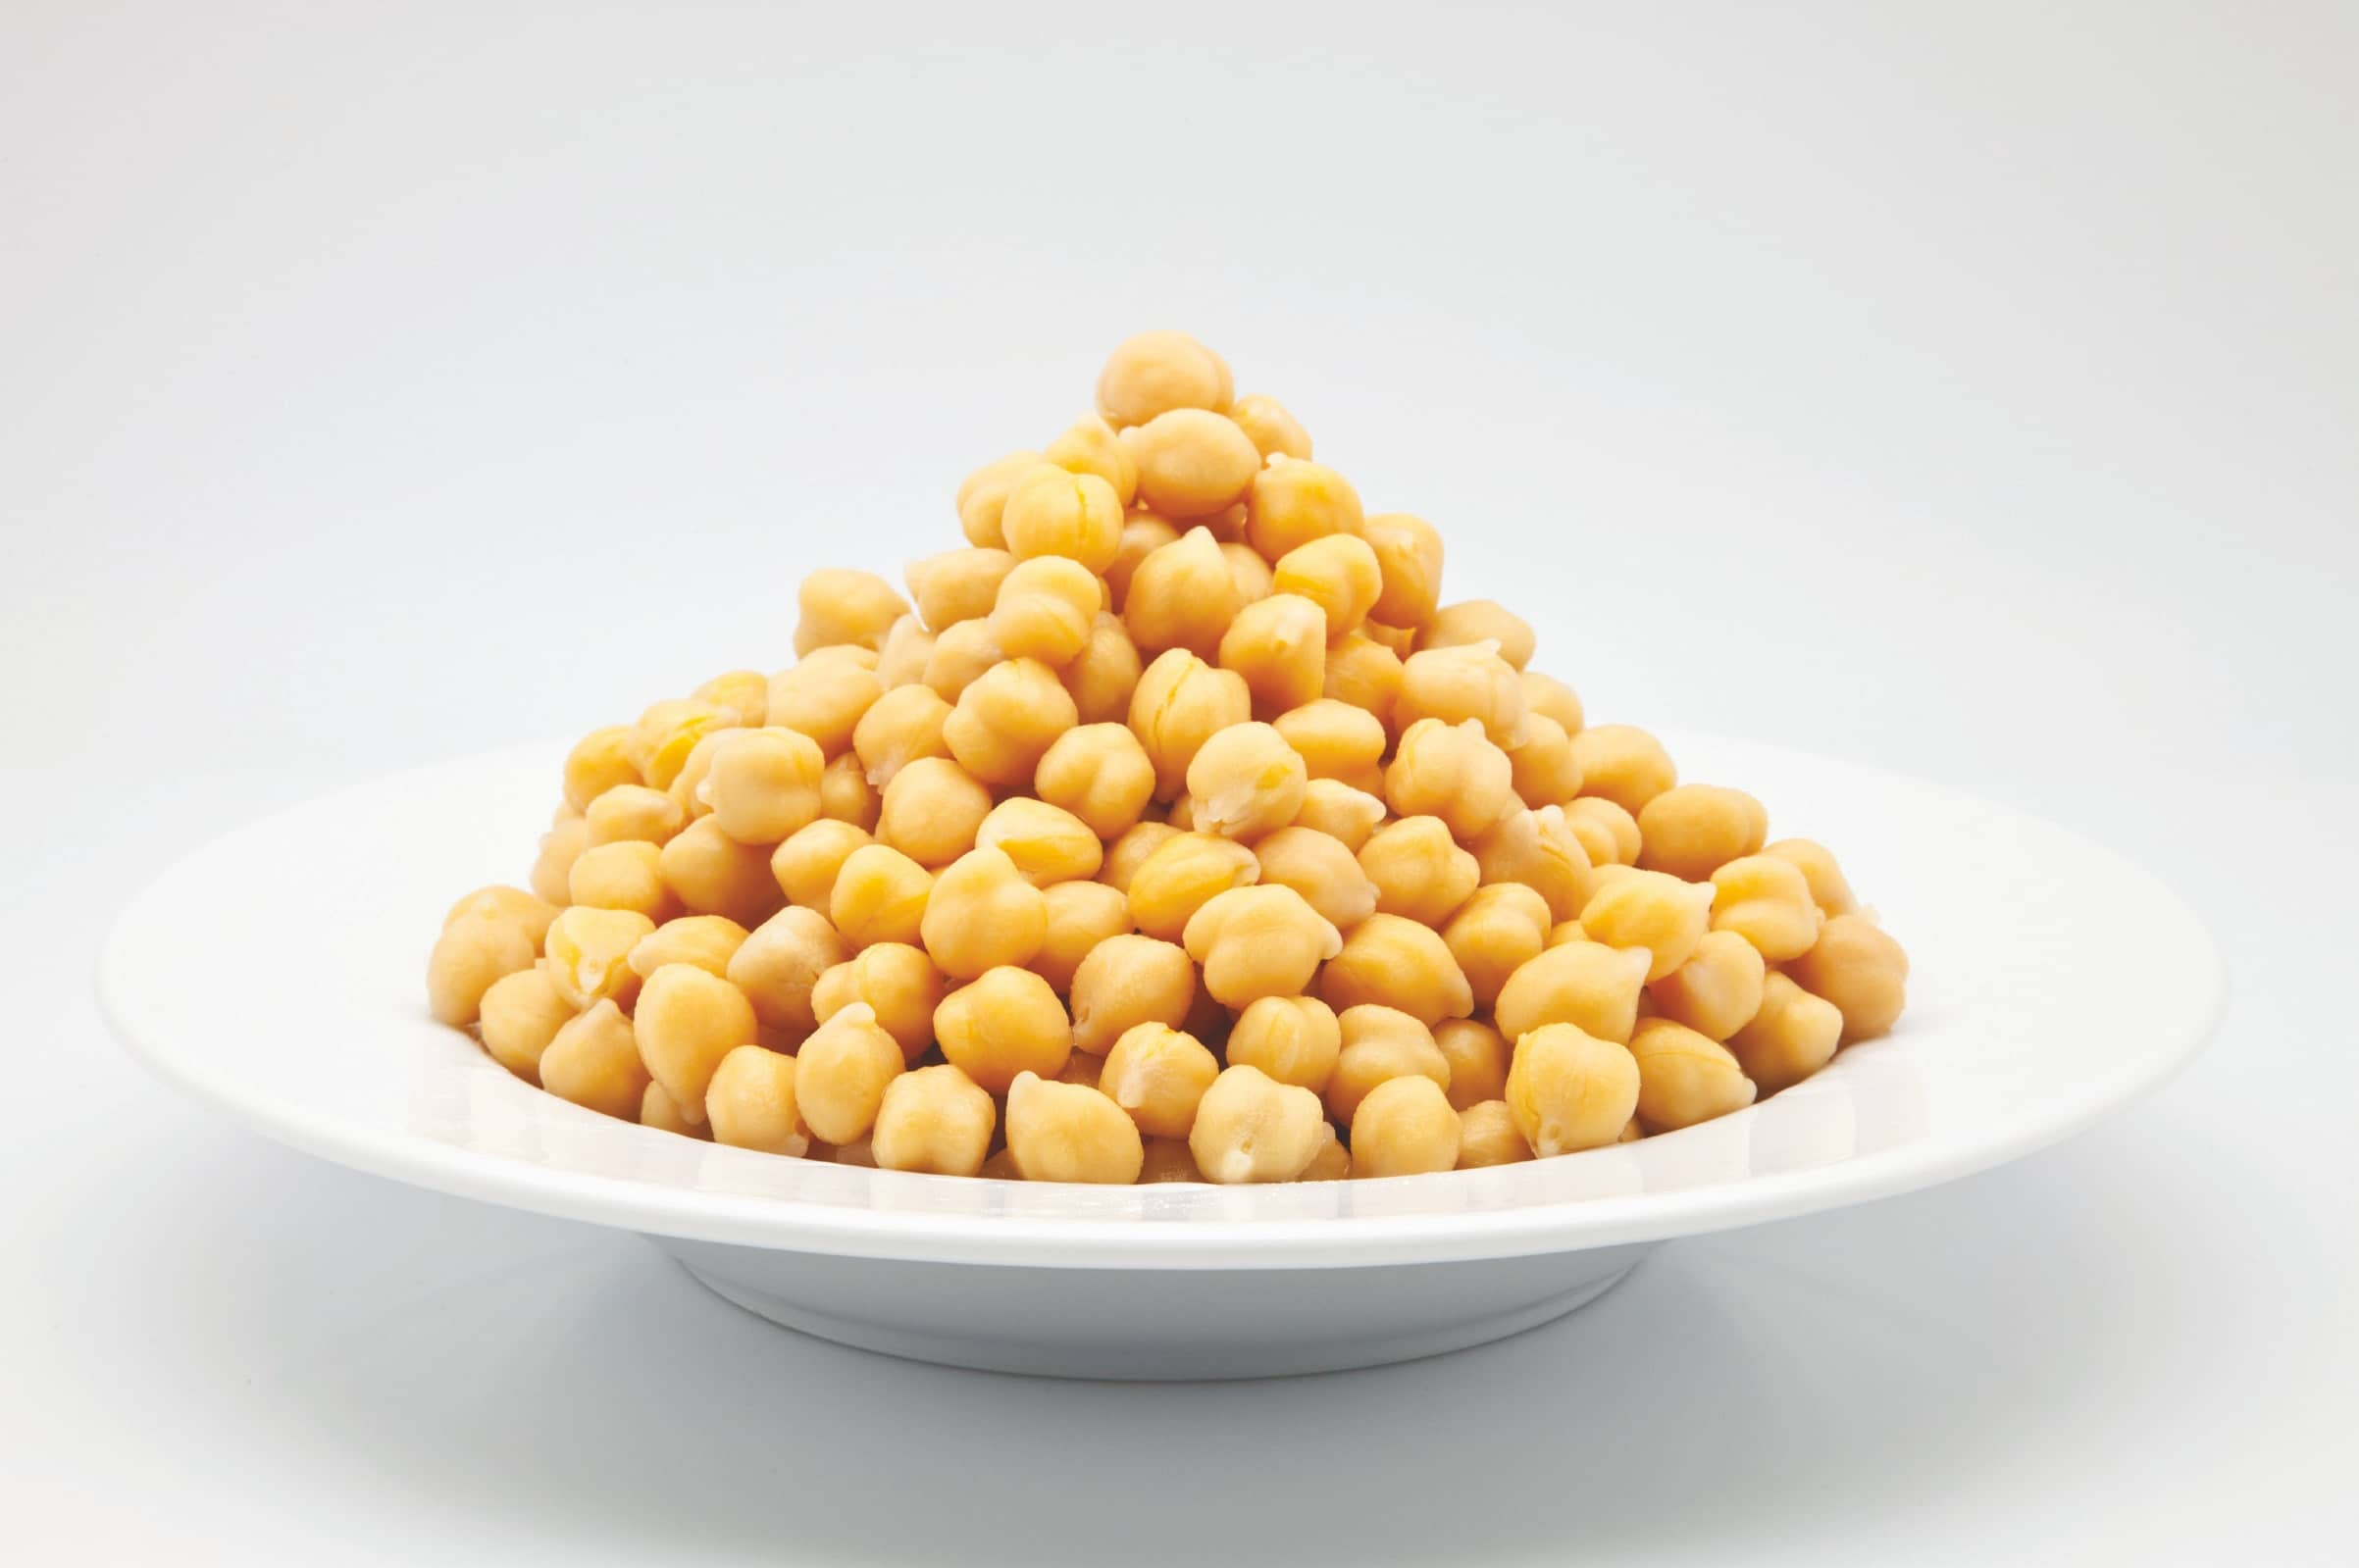 5 Things You Didn't Know About Chickpeas